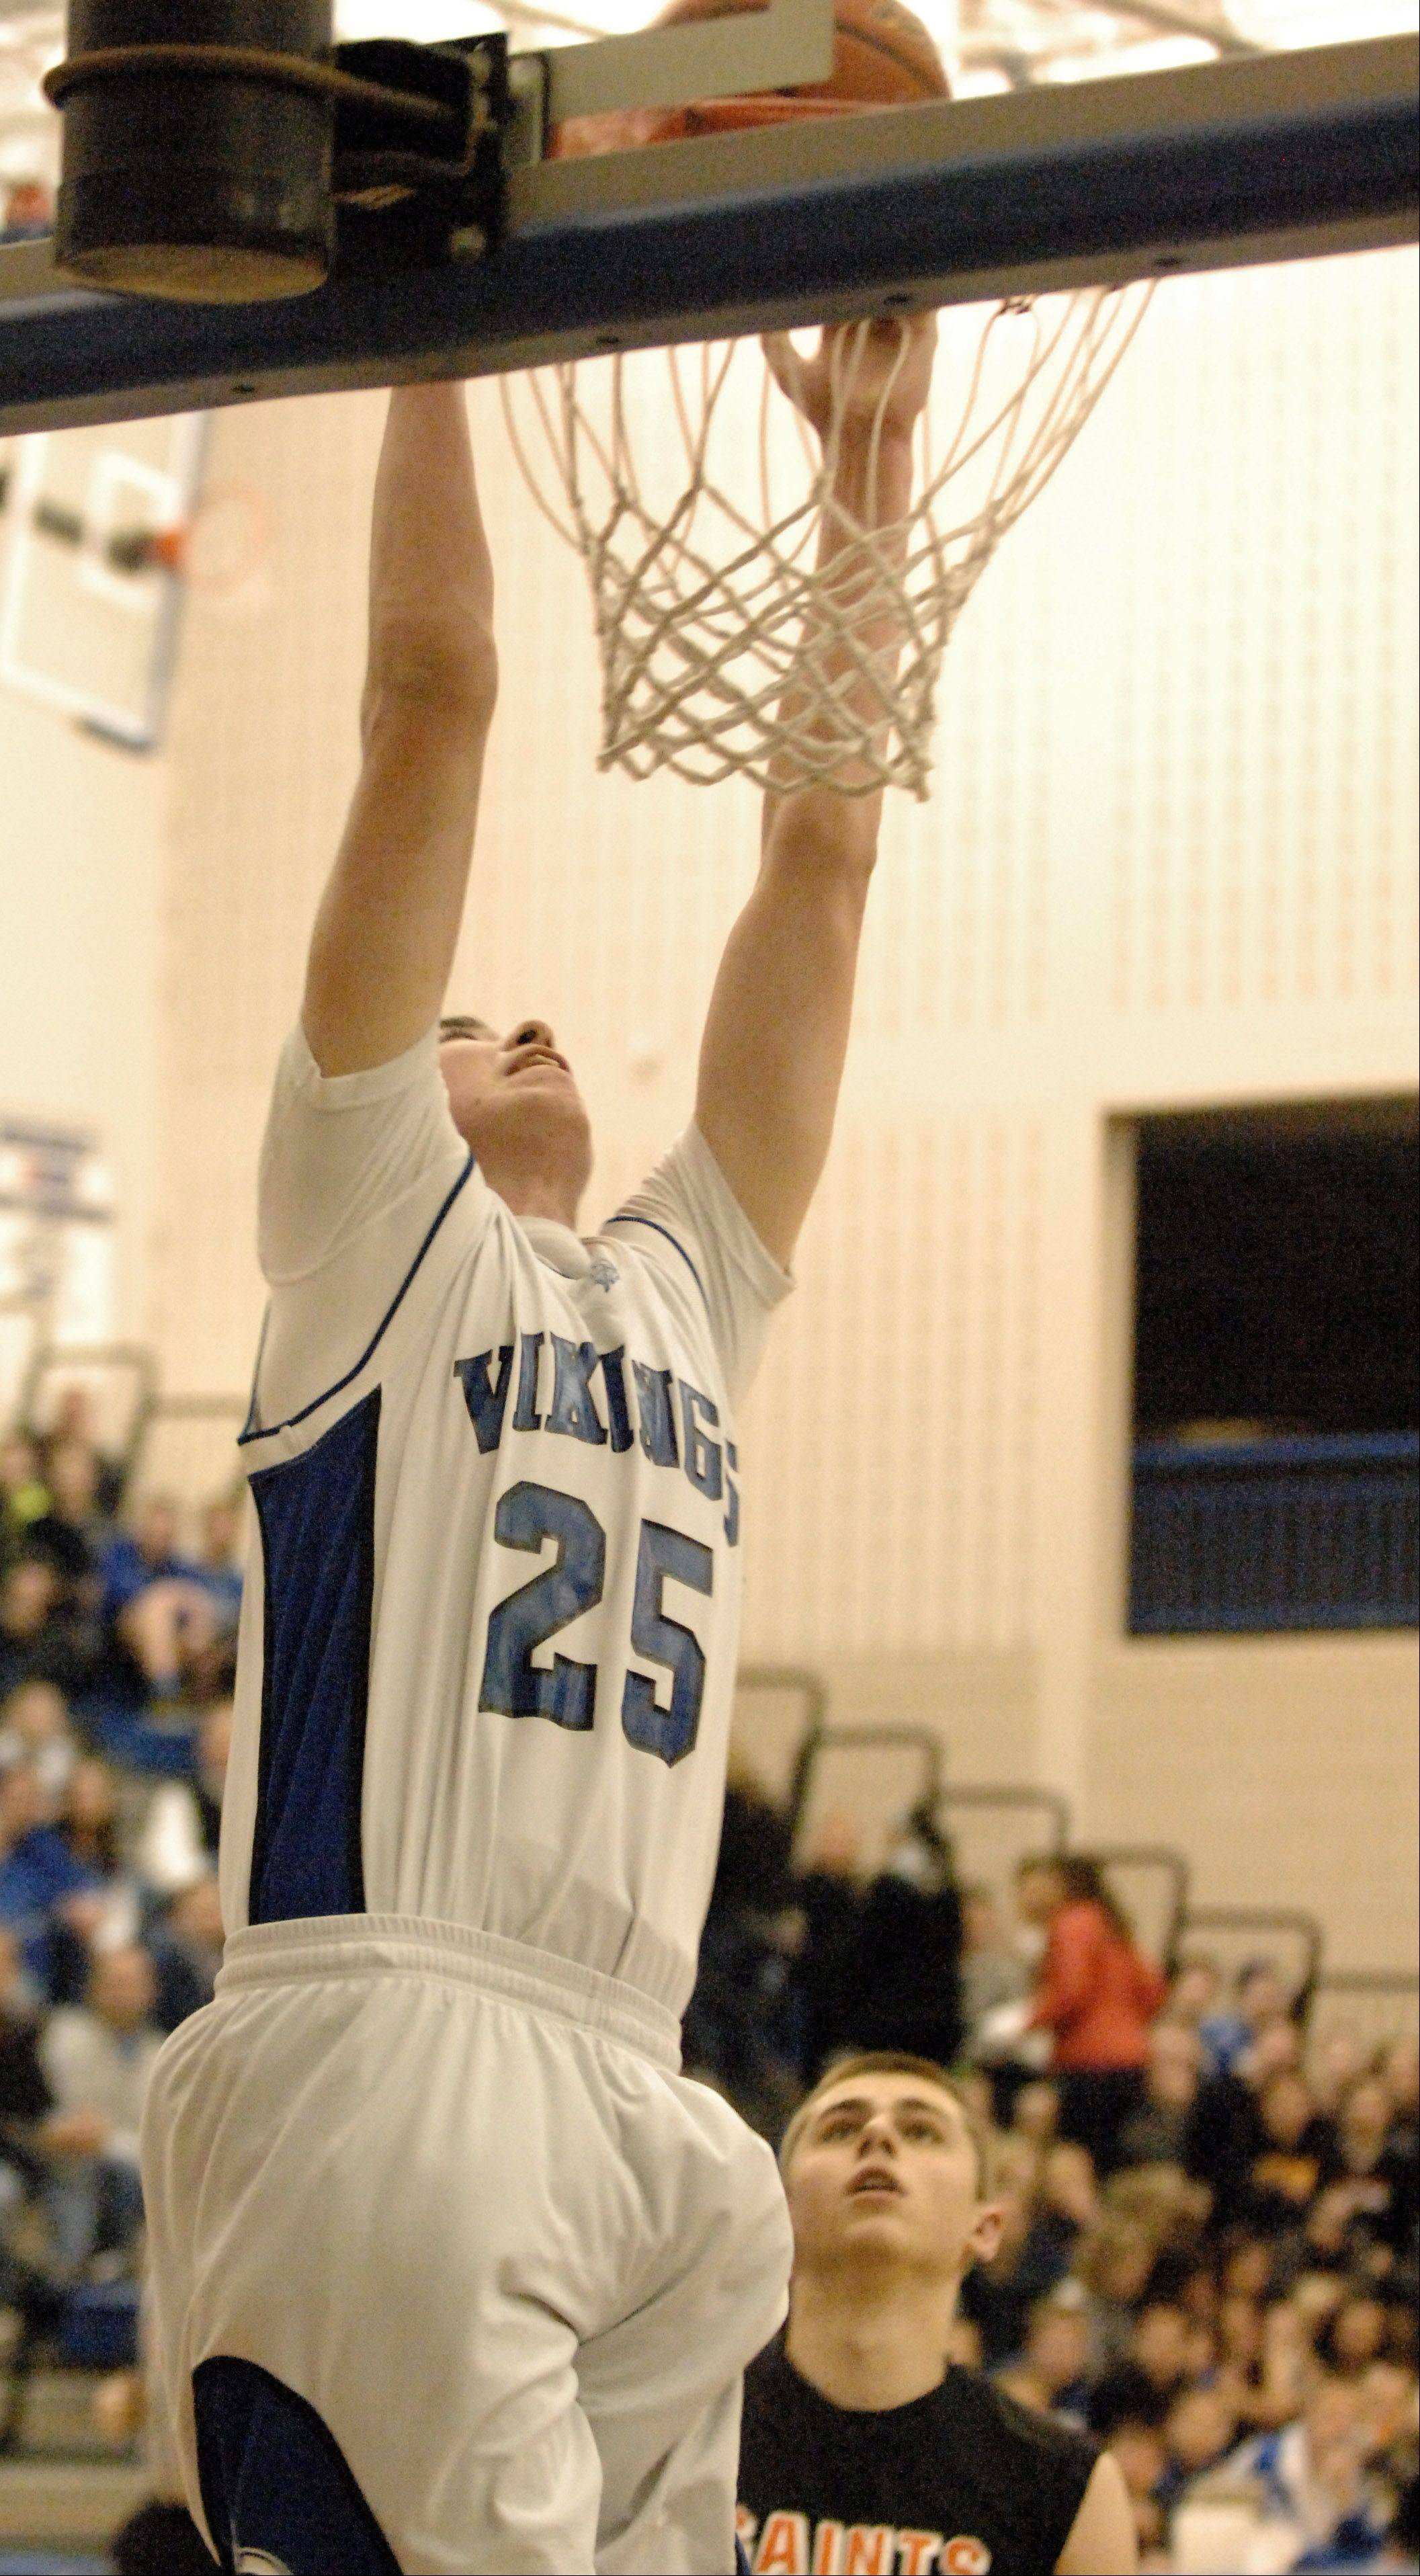 Geneva's Nate Navigato dunks on a fast break against St. Charles East during Friday's game in Geneva.